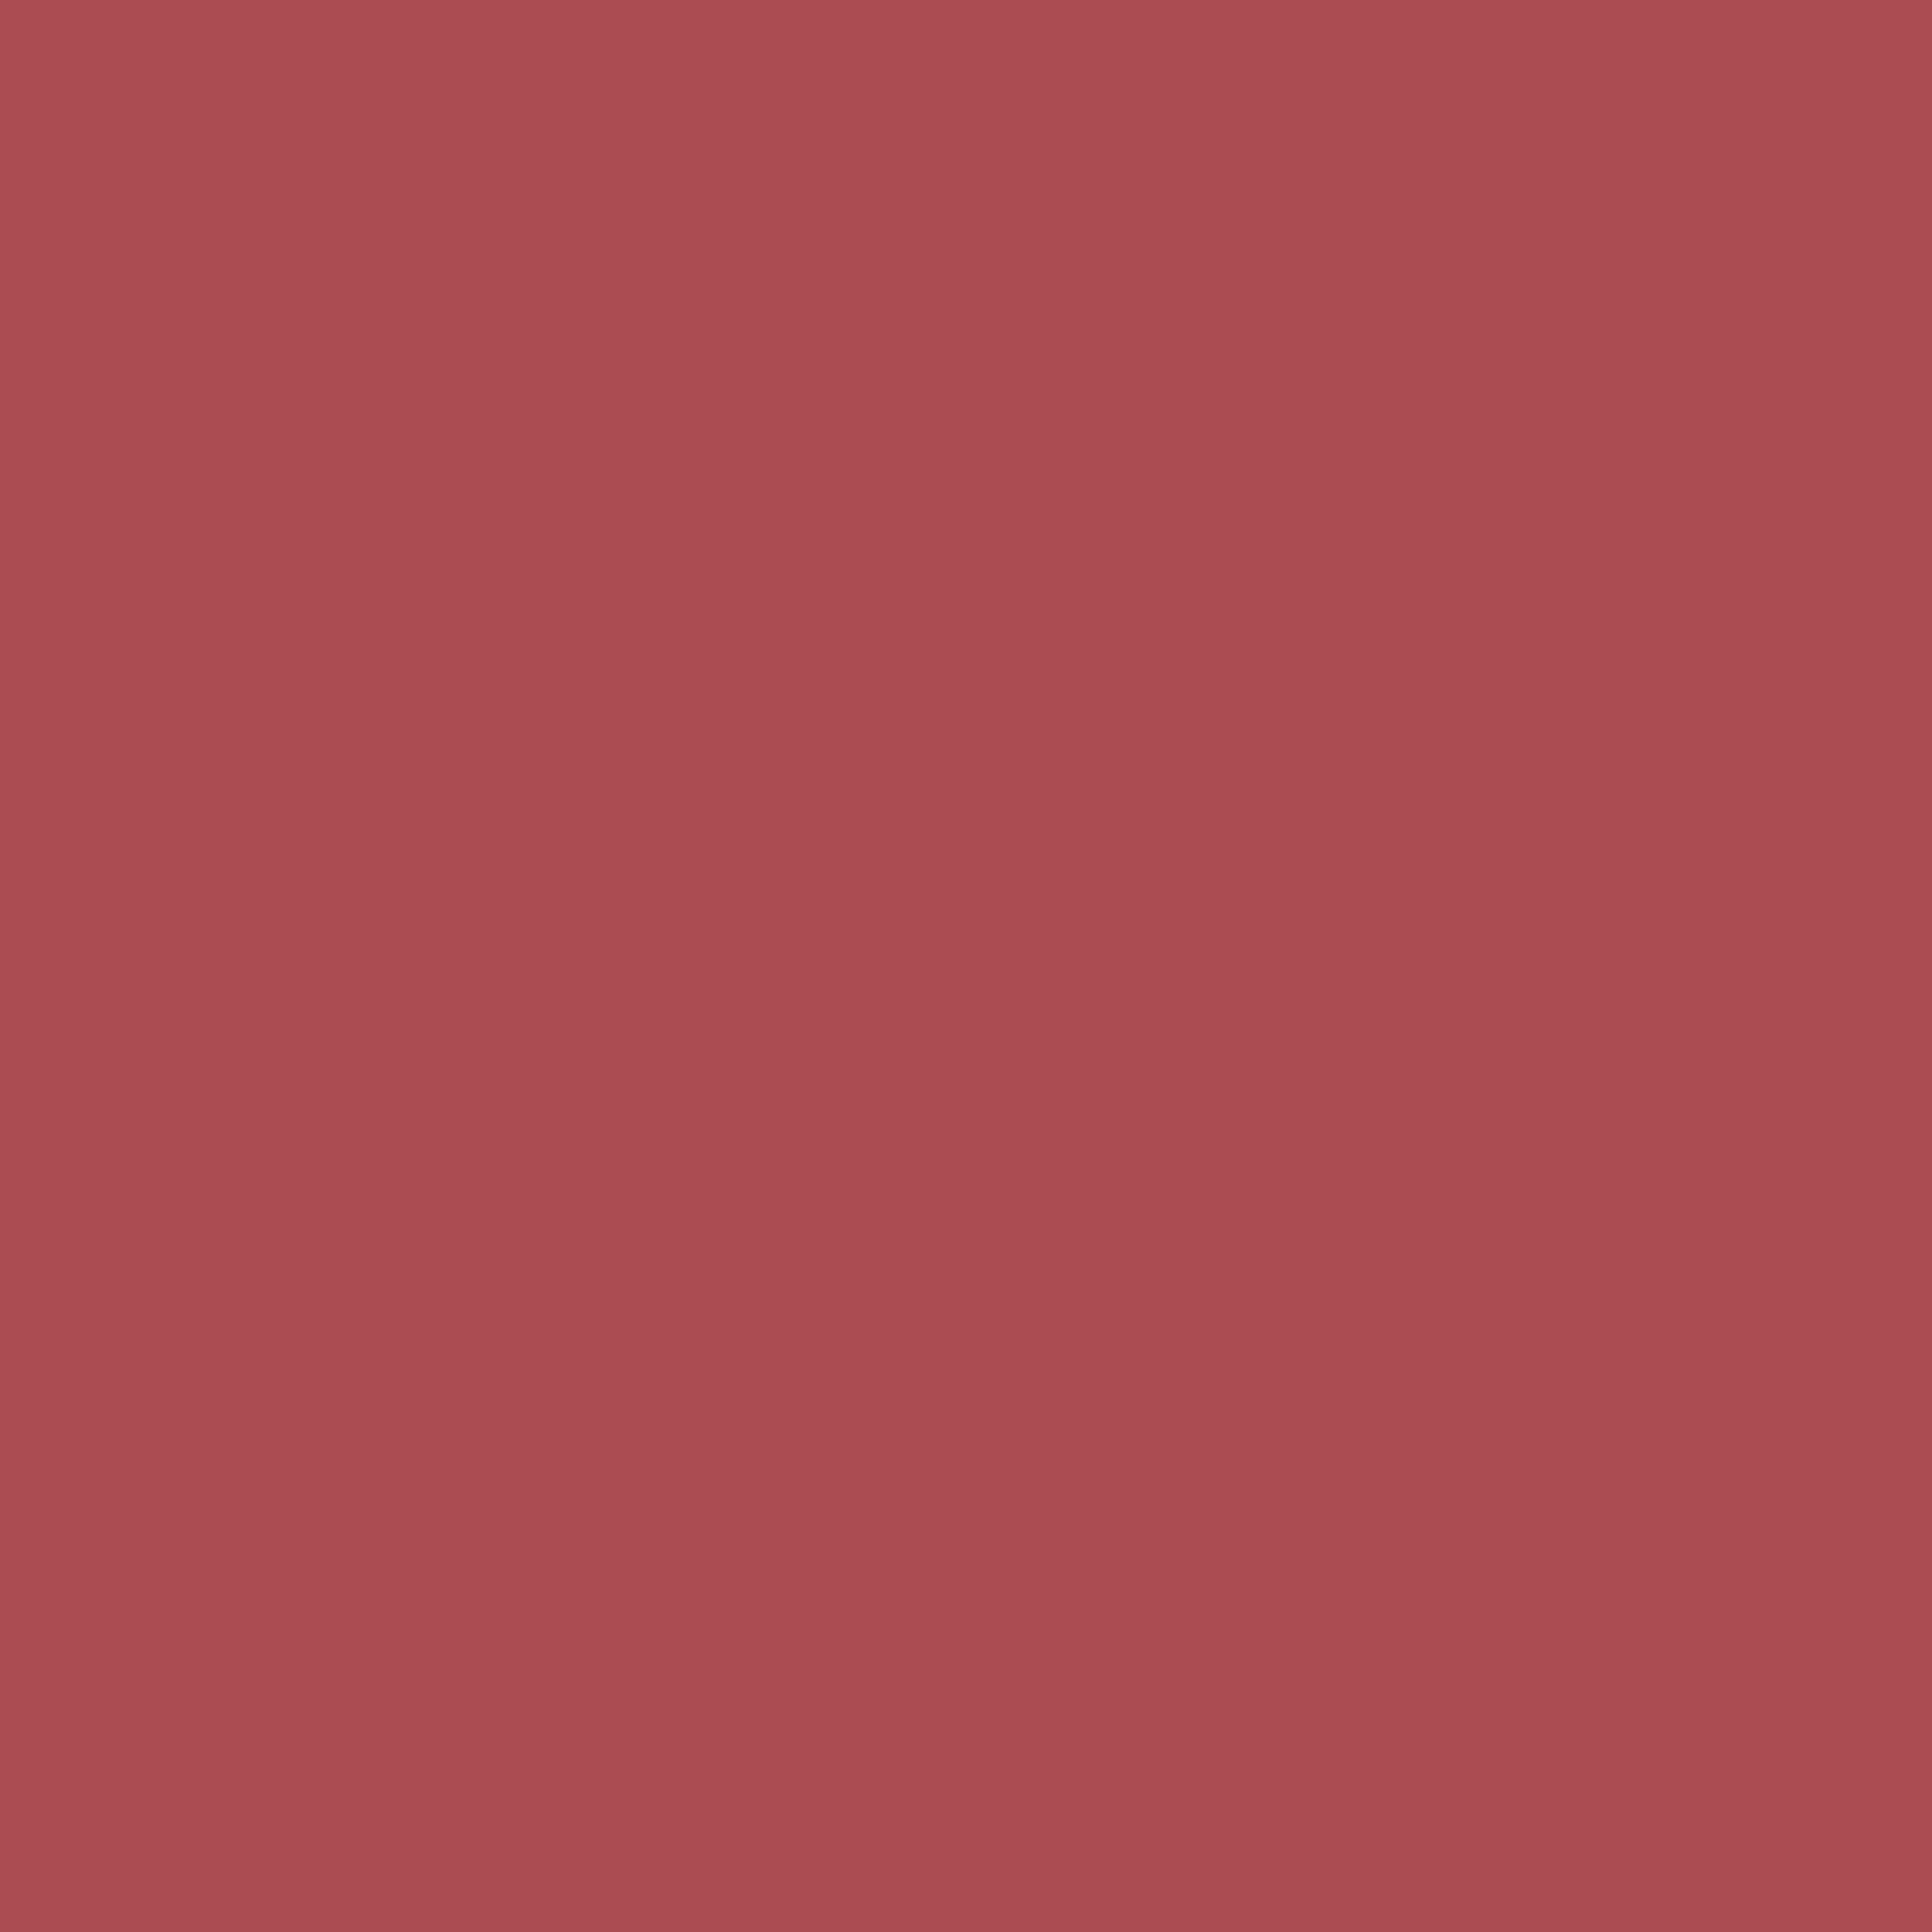 2732x2732 English Red Solid Color Background